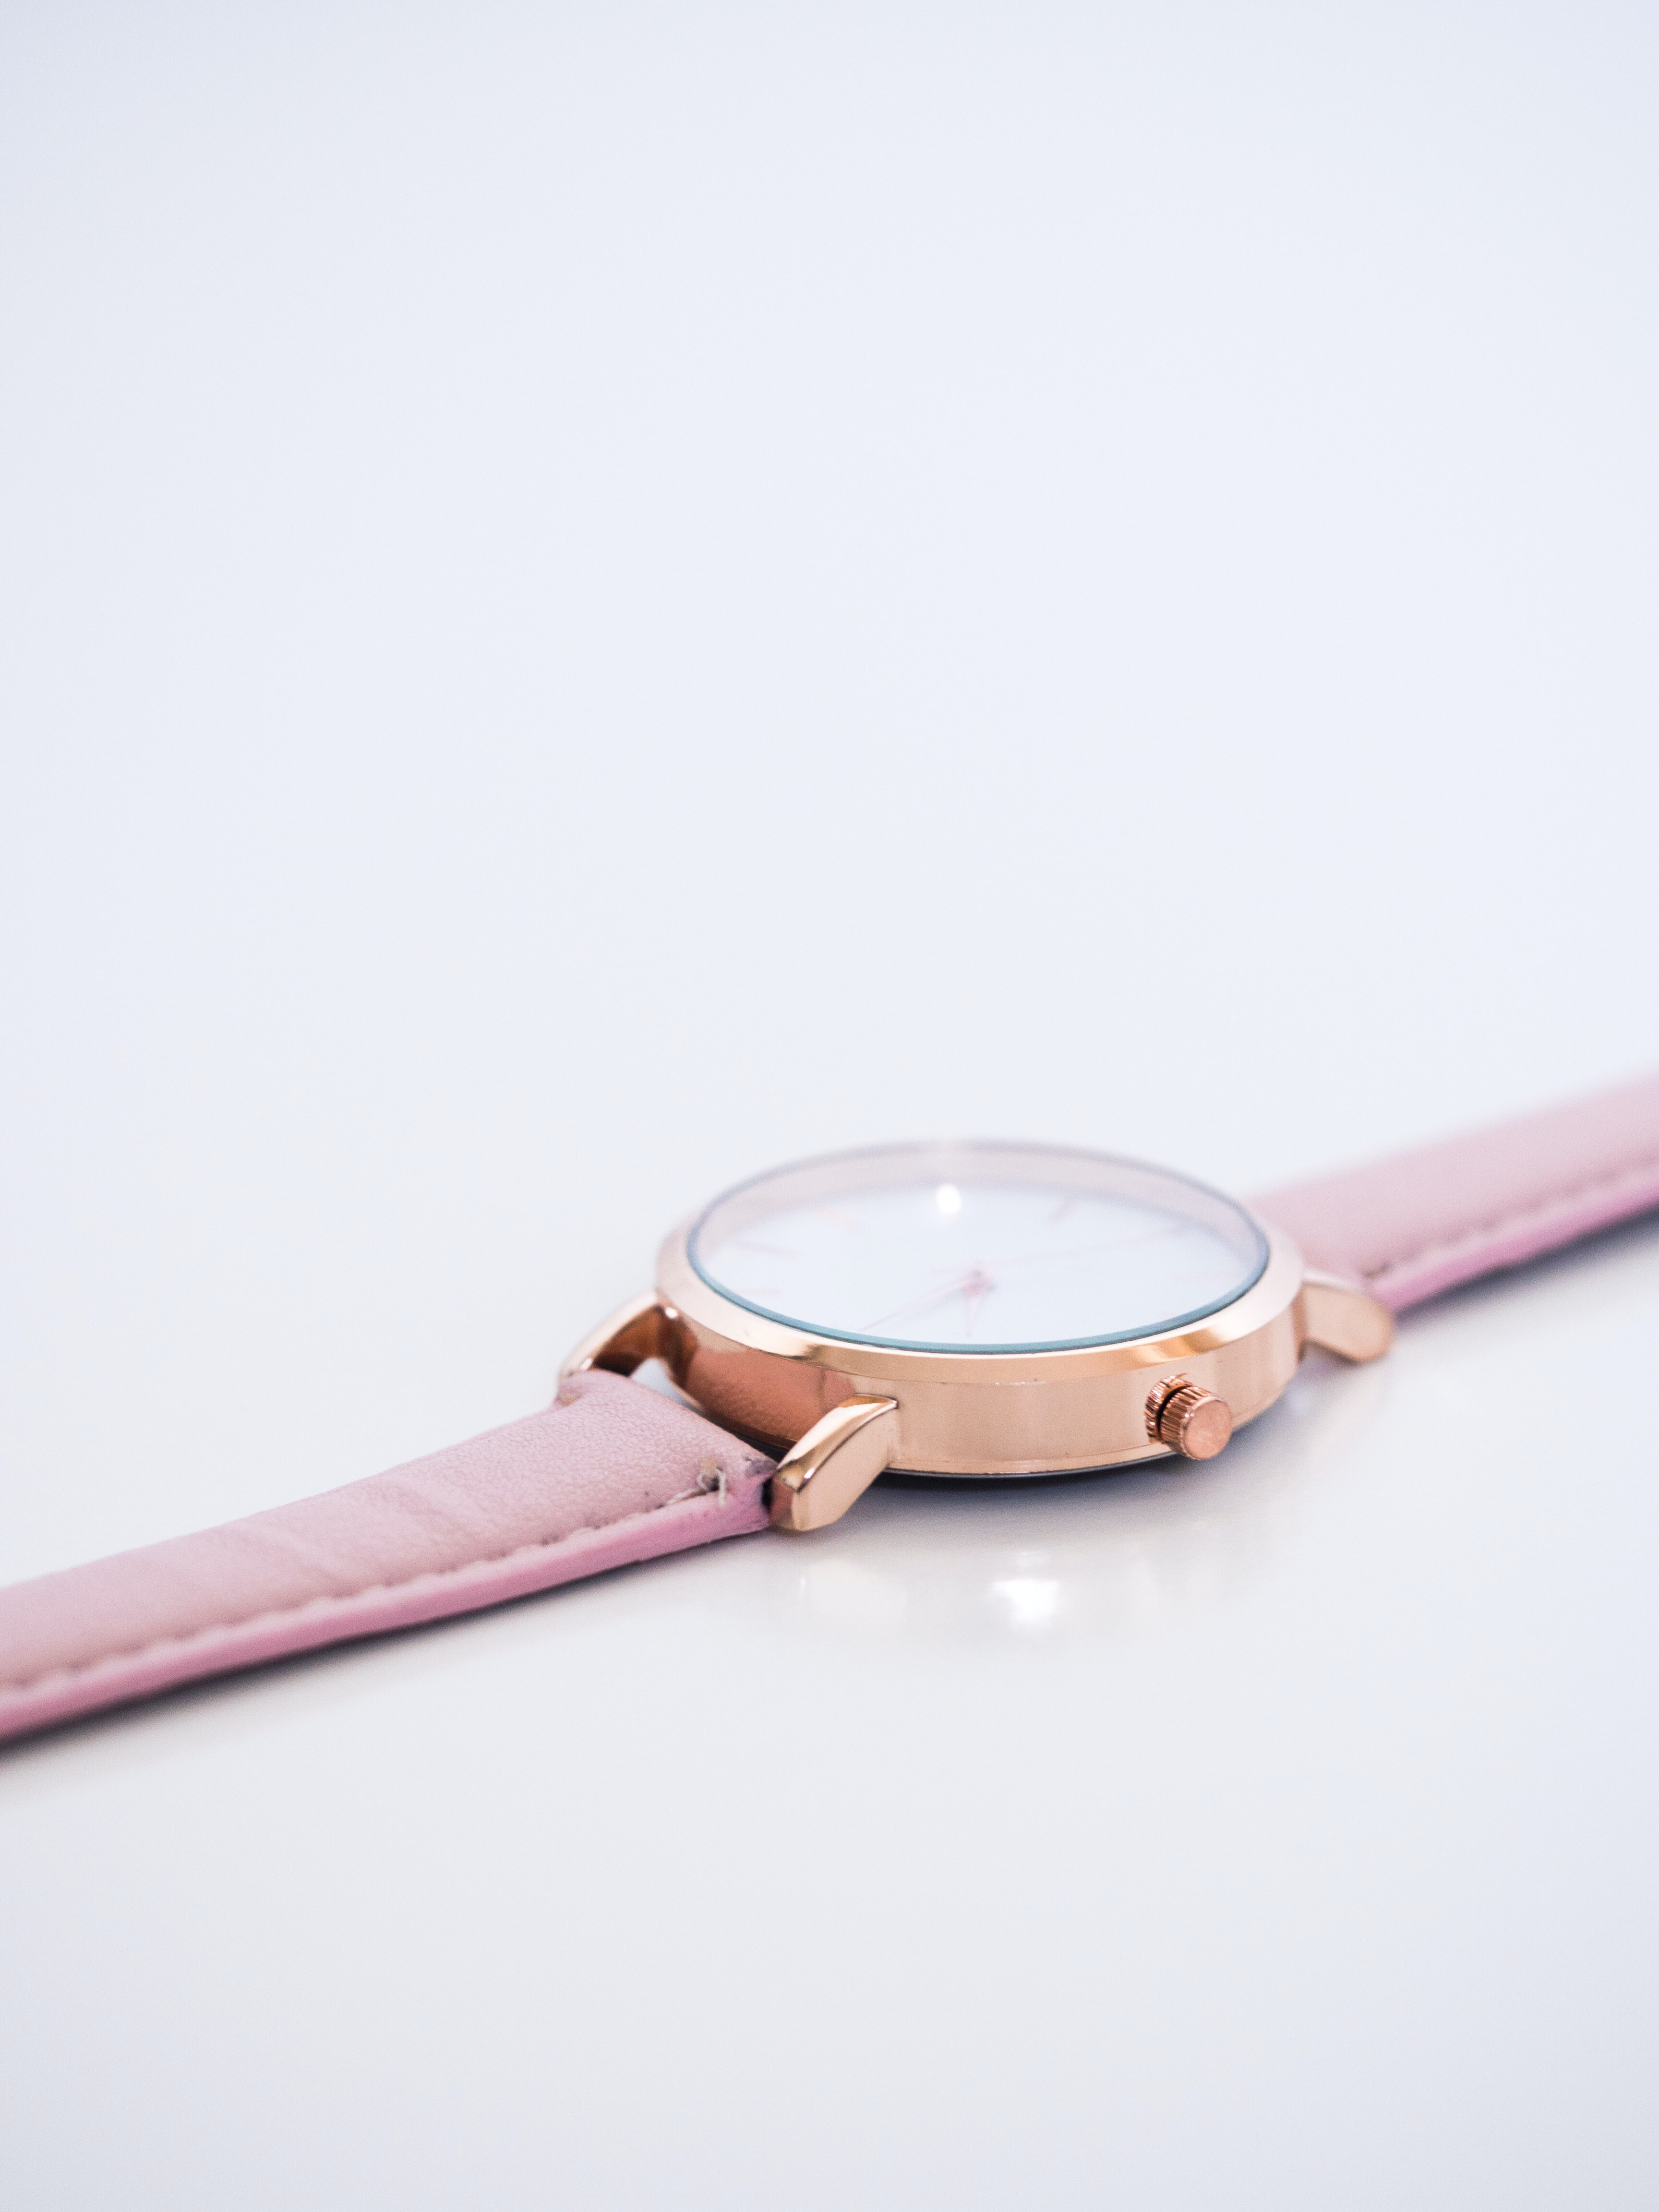 round white and gold-colored analog watch on white surface